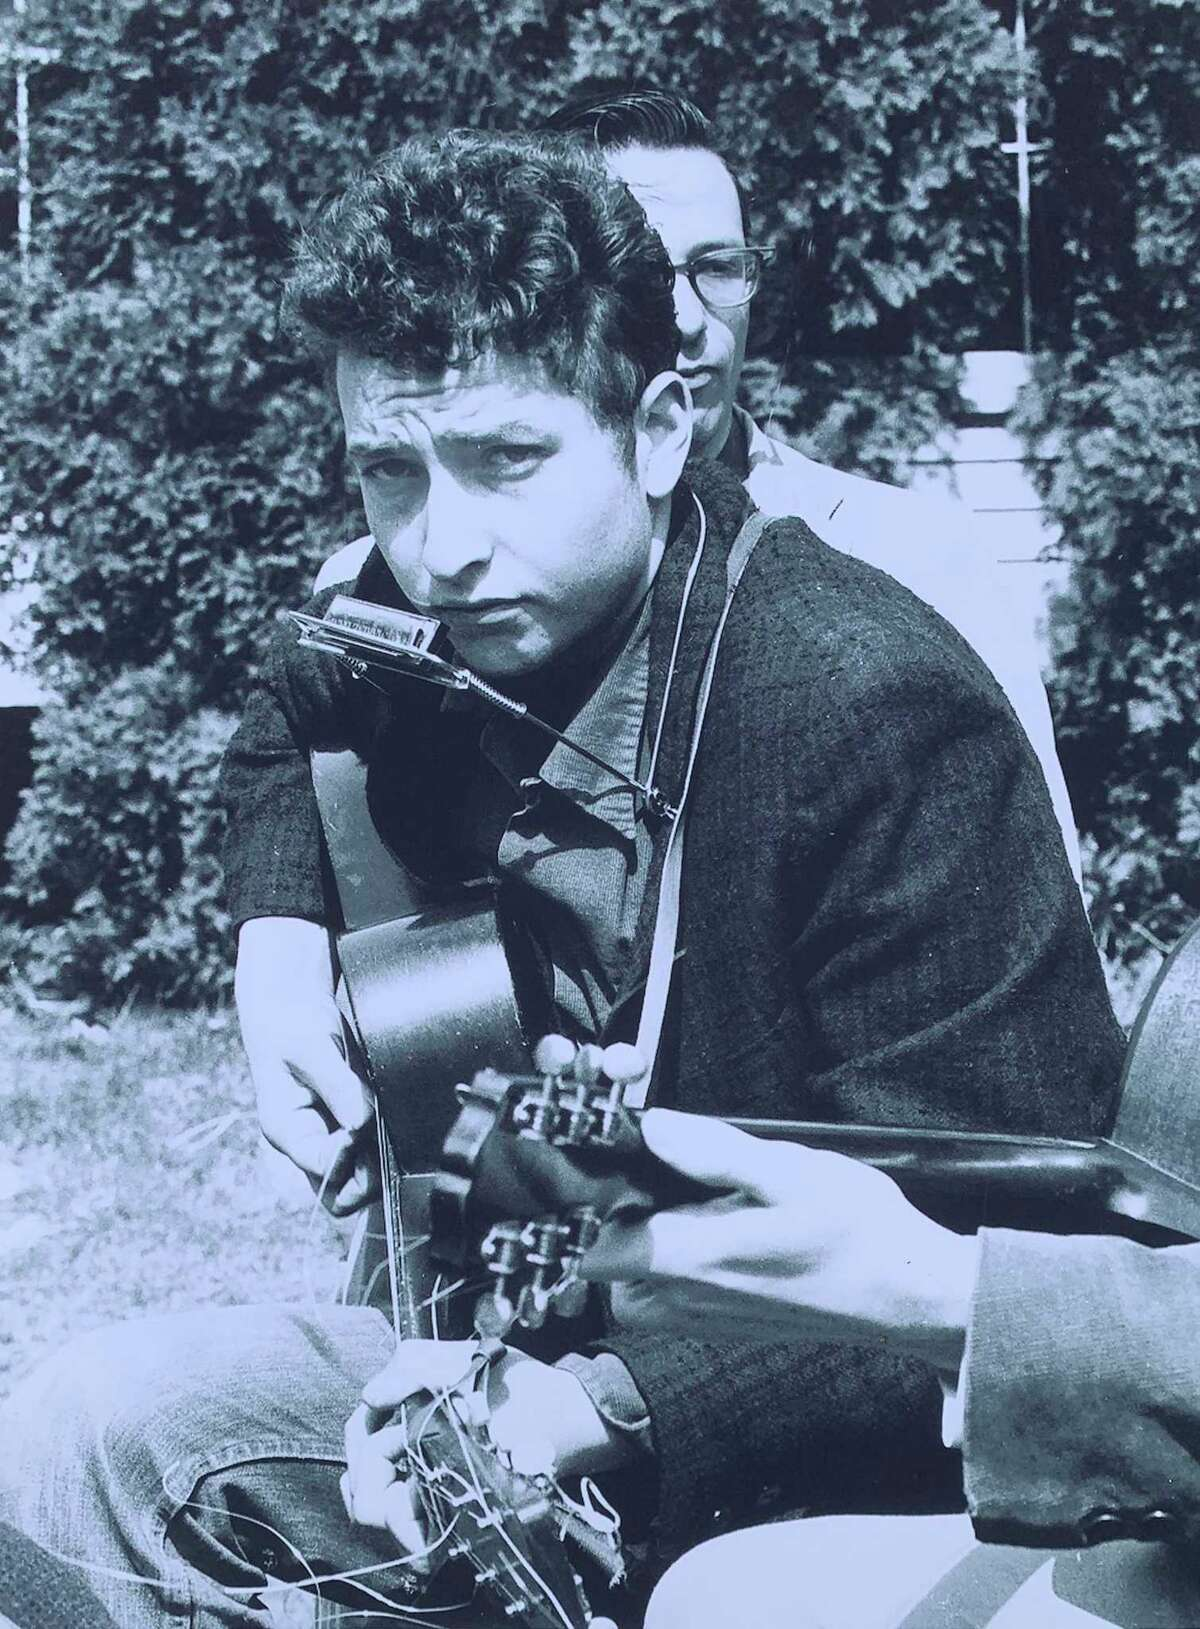 Bob Dylan, then 19, performing at the 1961 Indian Neck Folk Festival in Branford. The photo was taken by Stephen H. Fenerjian, a then-27-year-old Cambridge, Mass., photographer. Fernerjian now is 87 and living in Sharon, Mass.